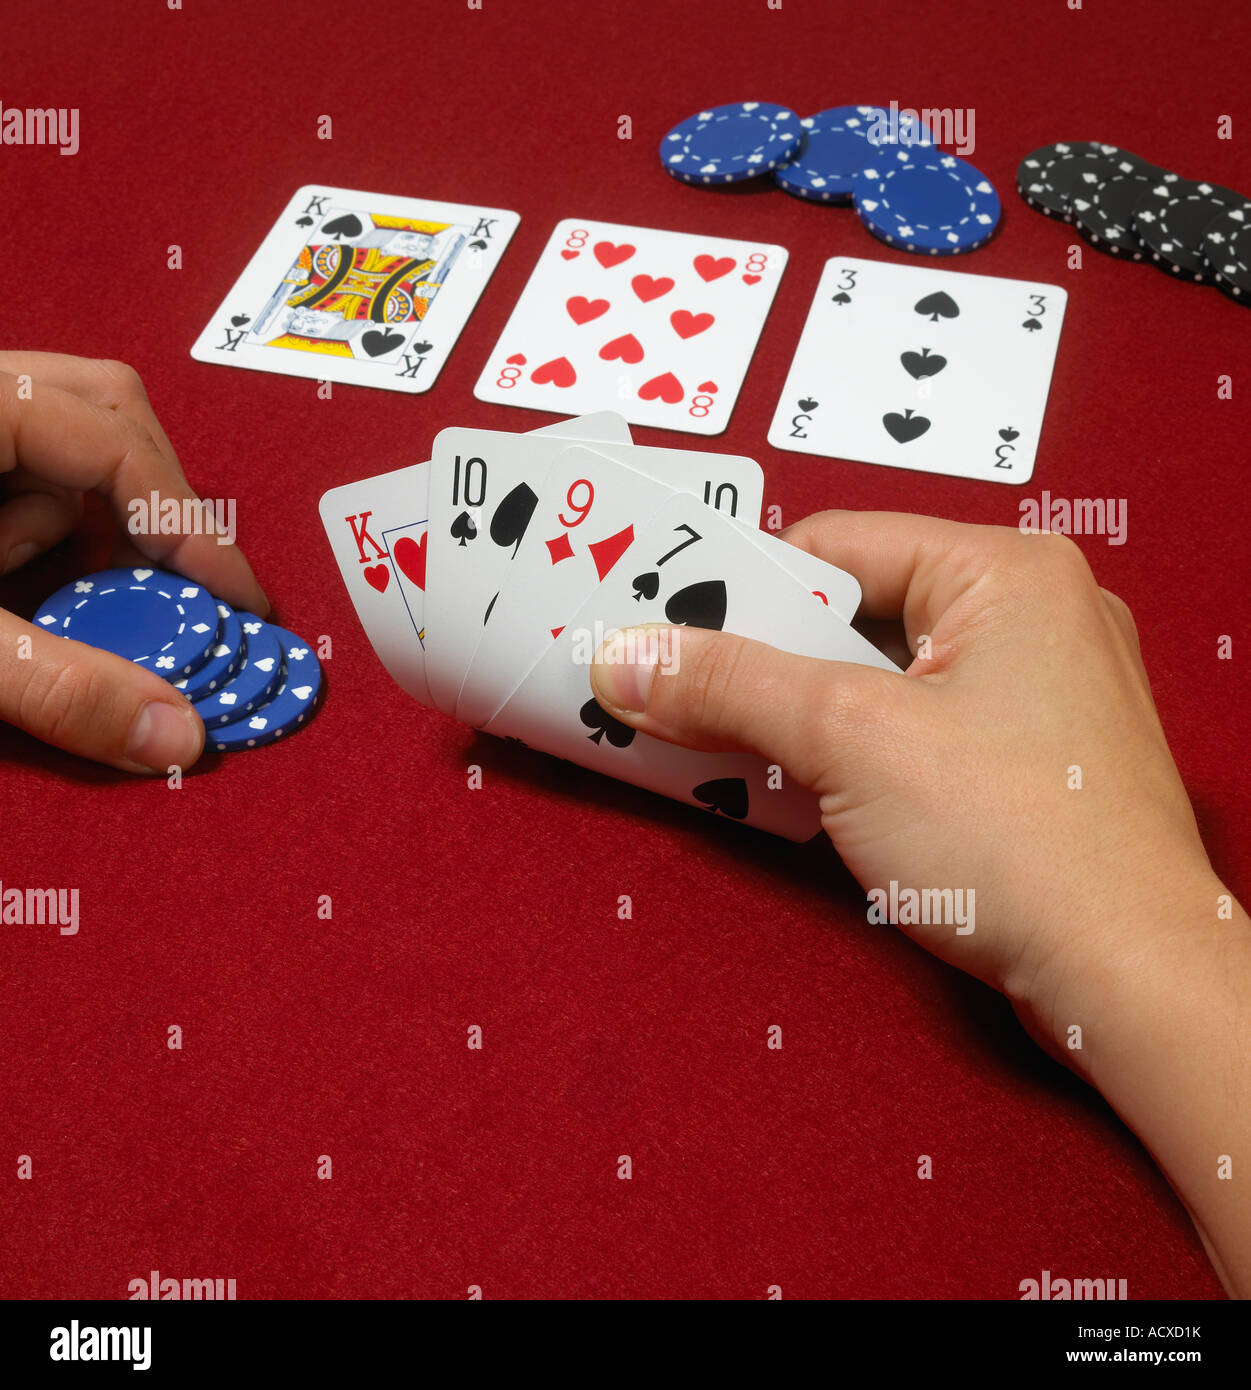 Poker hand with players hands against red baize - Stock Image